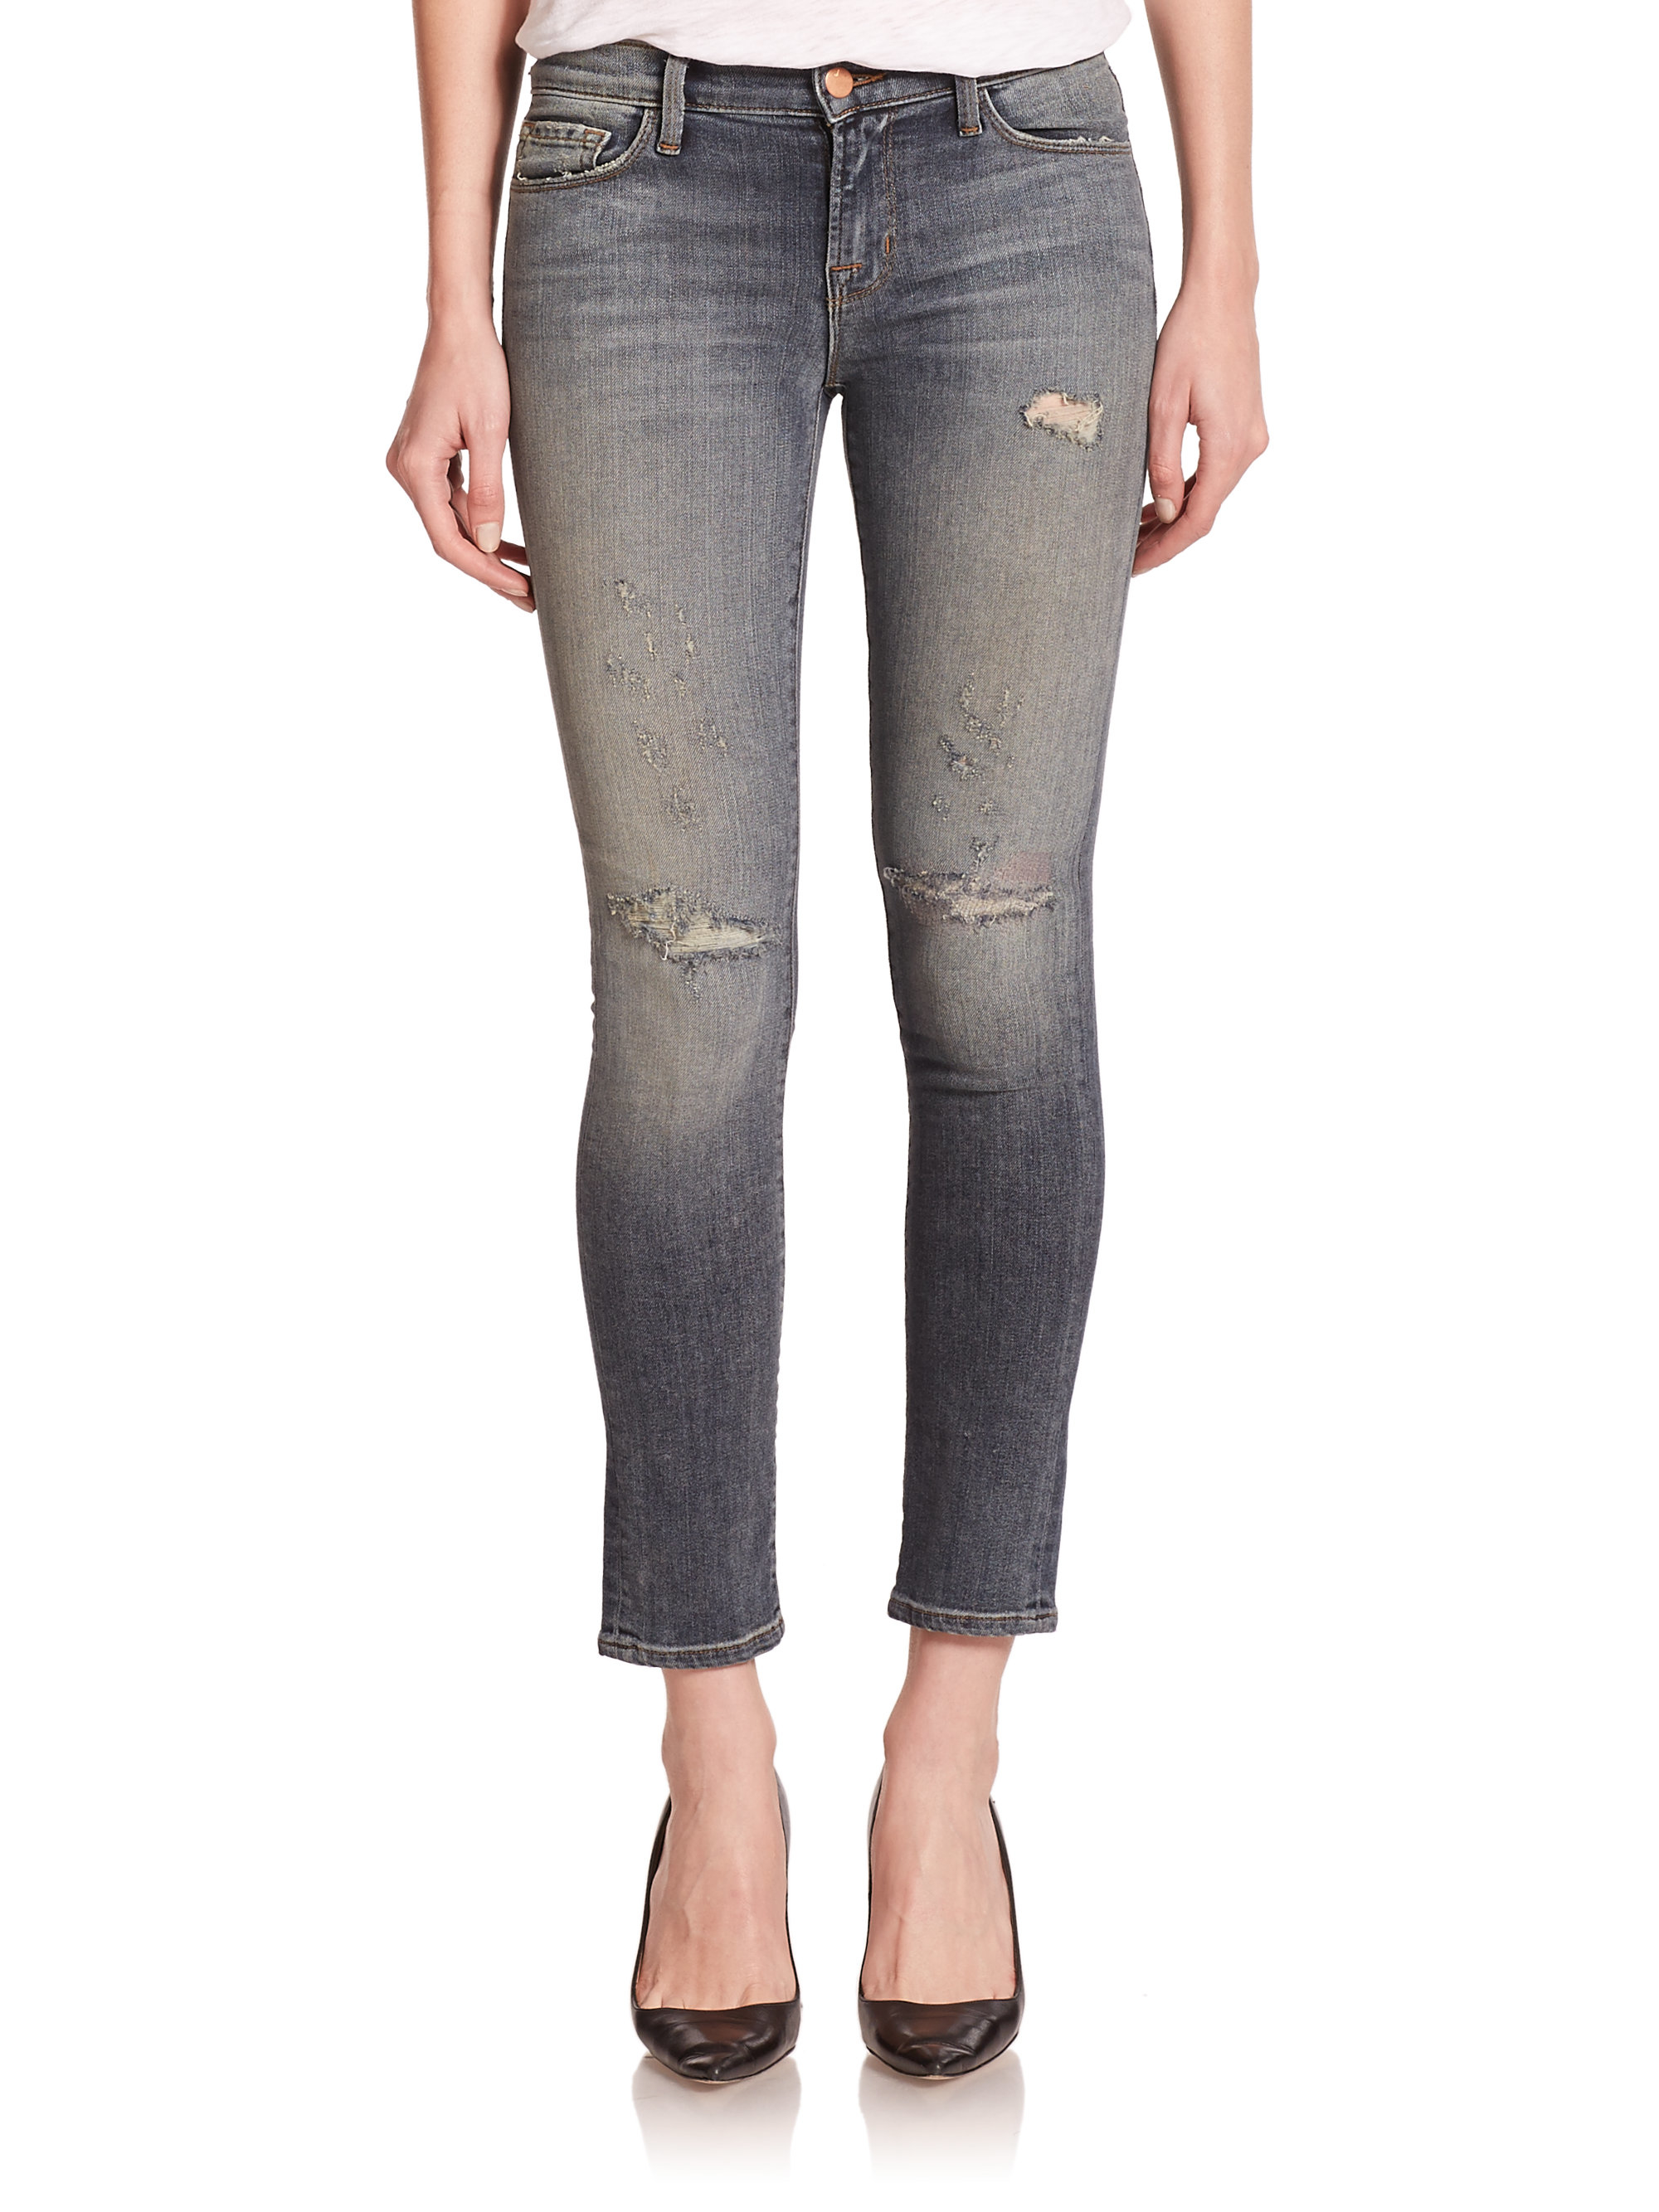 J brand 811 Mid-rise Distressed Skinny Jeans in Gray | Lyst